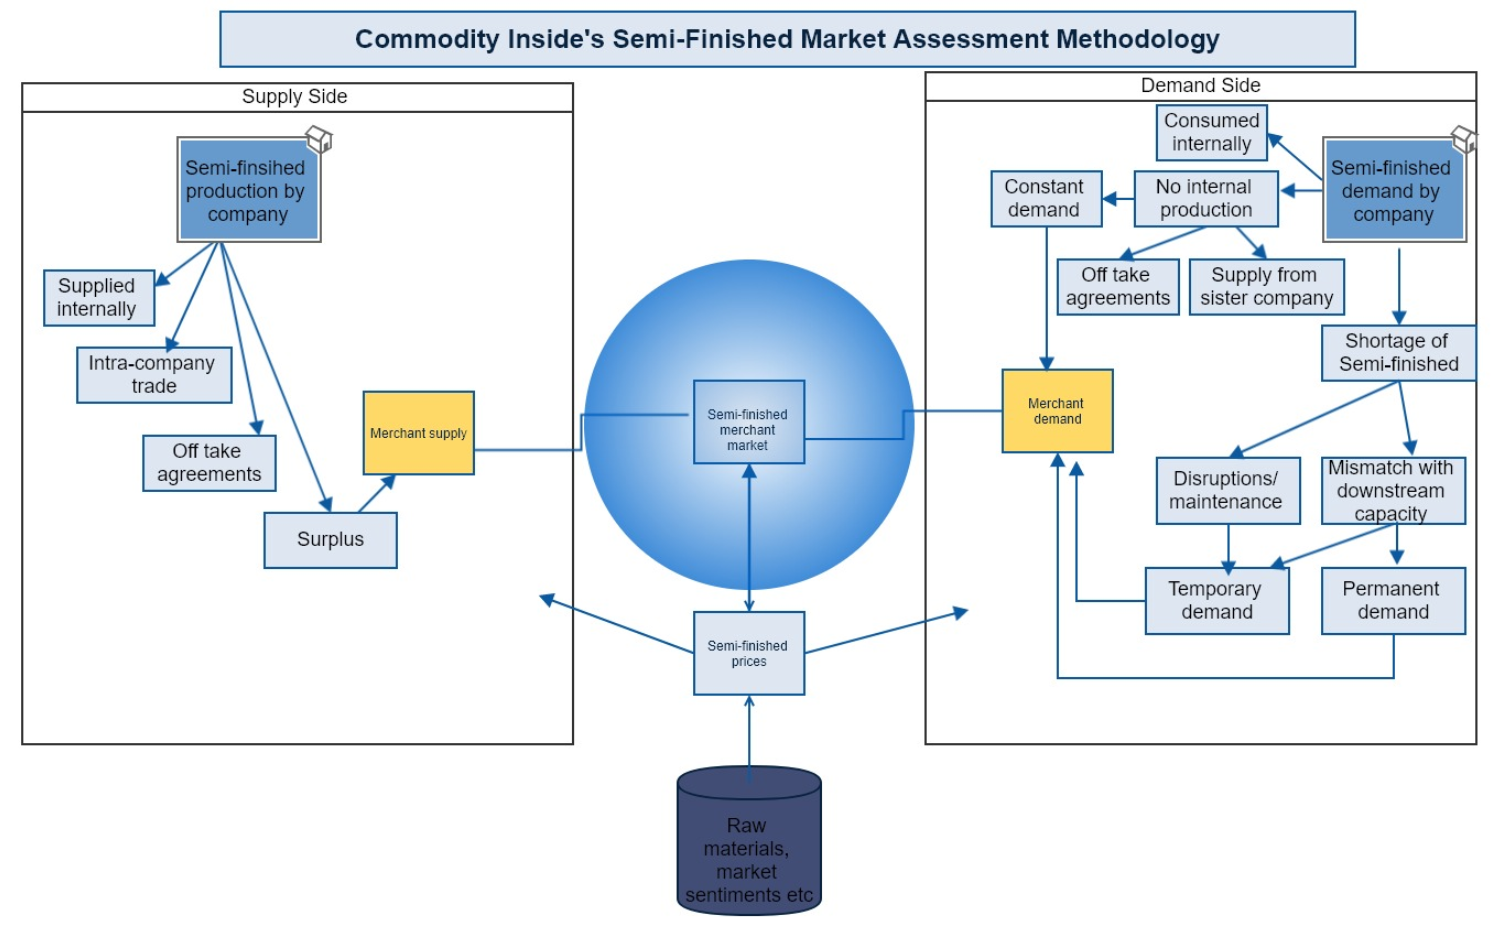 Global Merchant Steel Billet Assessment Methodology